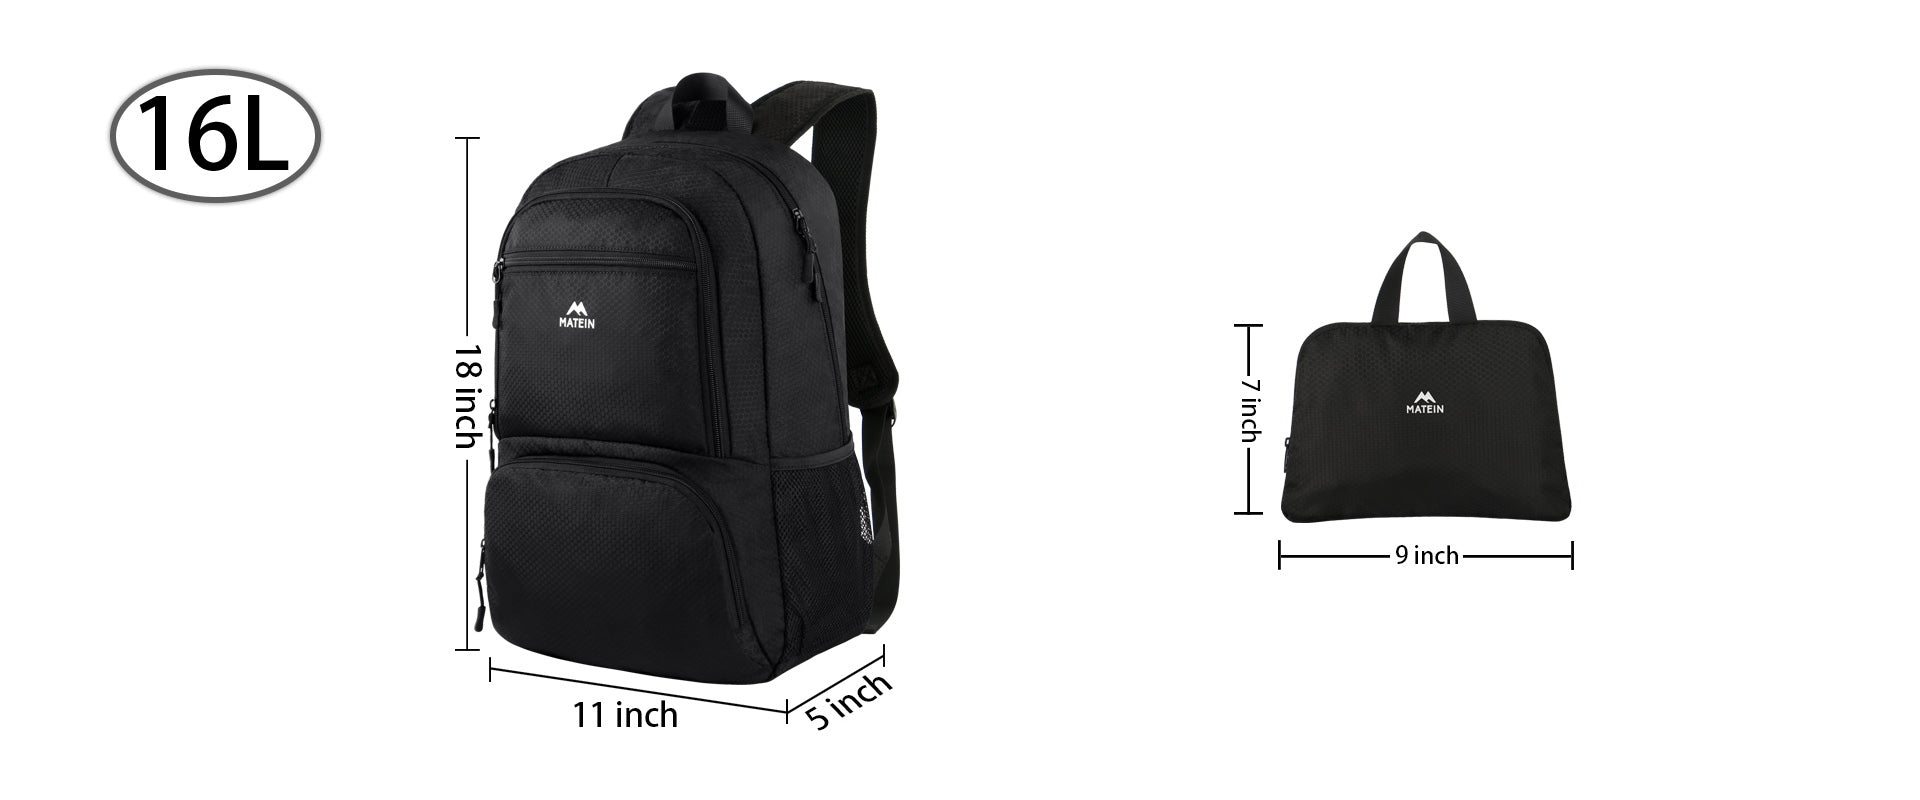 Matein Hiking Backpack